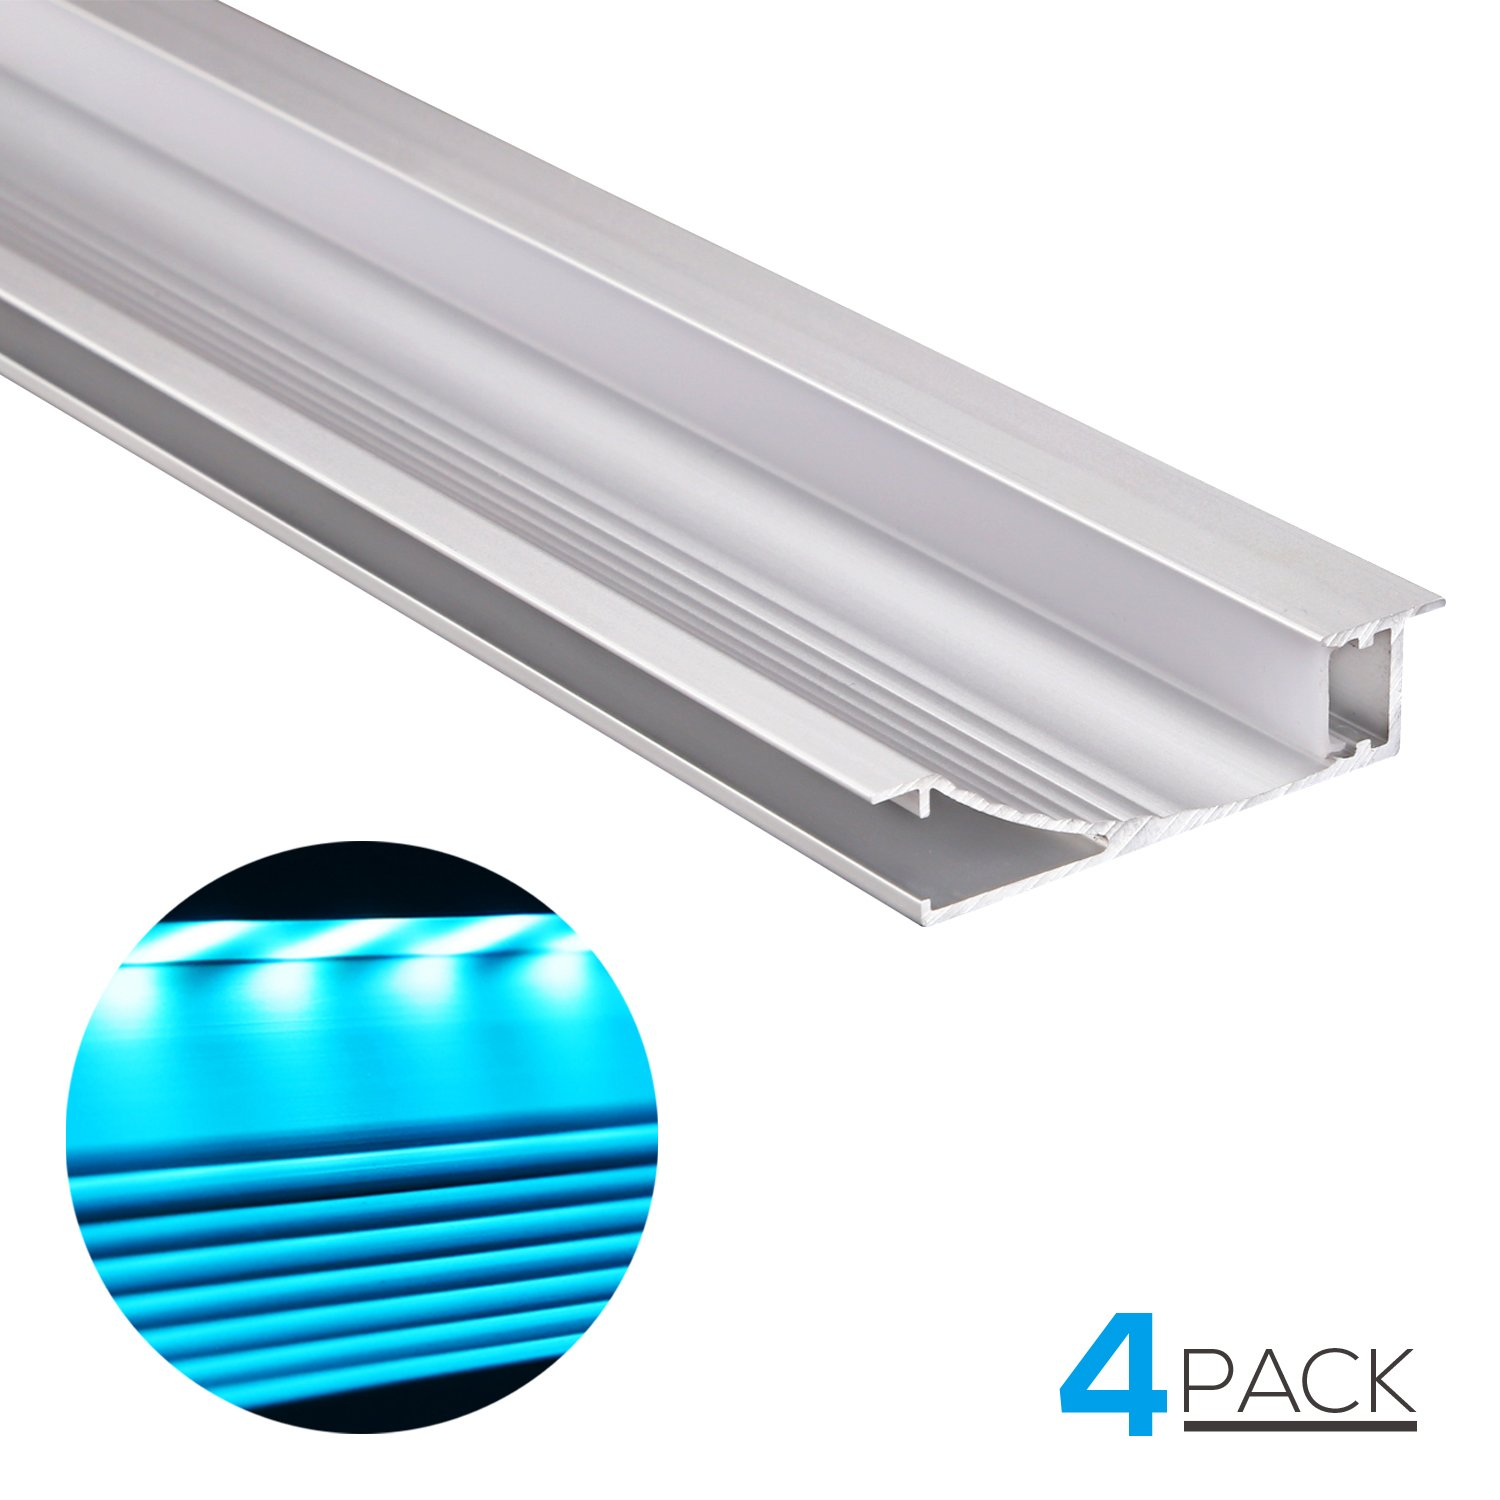 End Caps and Mounting Clips 5 PACK of 1M//3.3ft U-Shape Aluminum Channel for surface and recessed LED strip installation U02 Torchstar Y00VRGIVLQ Slim Compact Design Aluminum Profile with Oyster White Cover